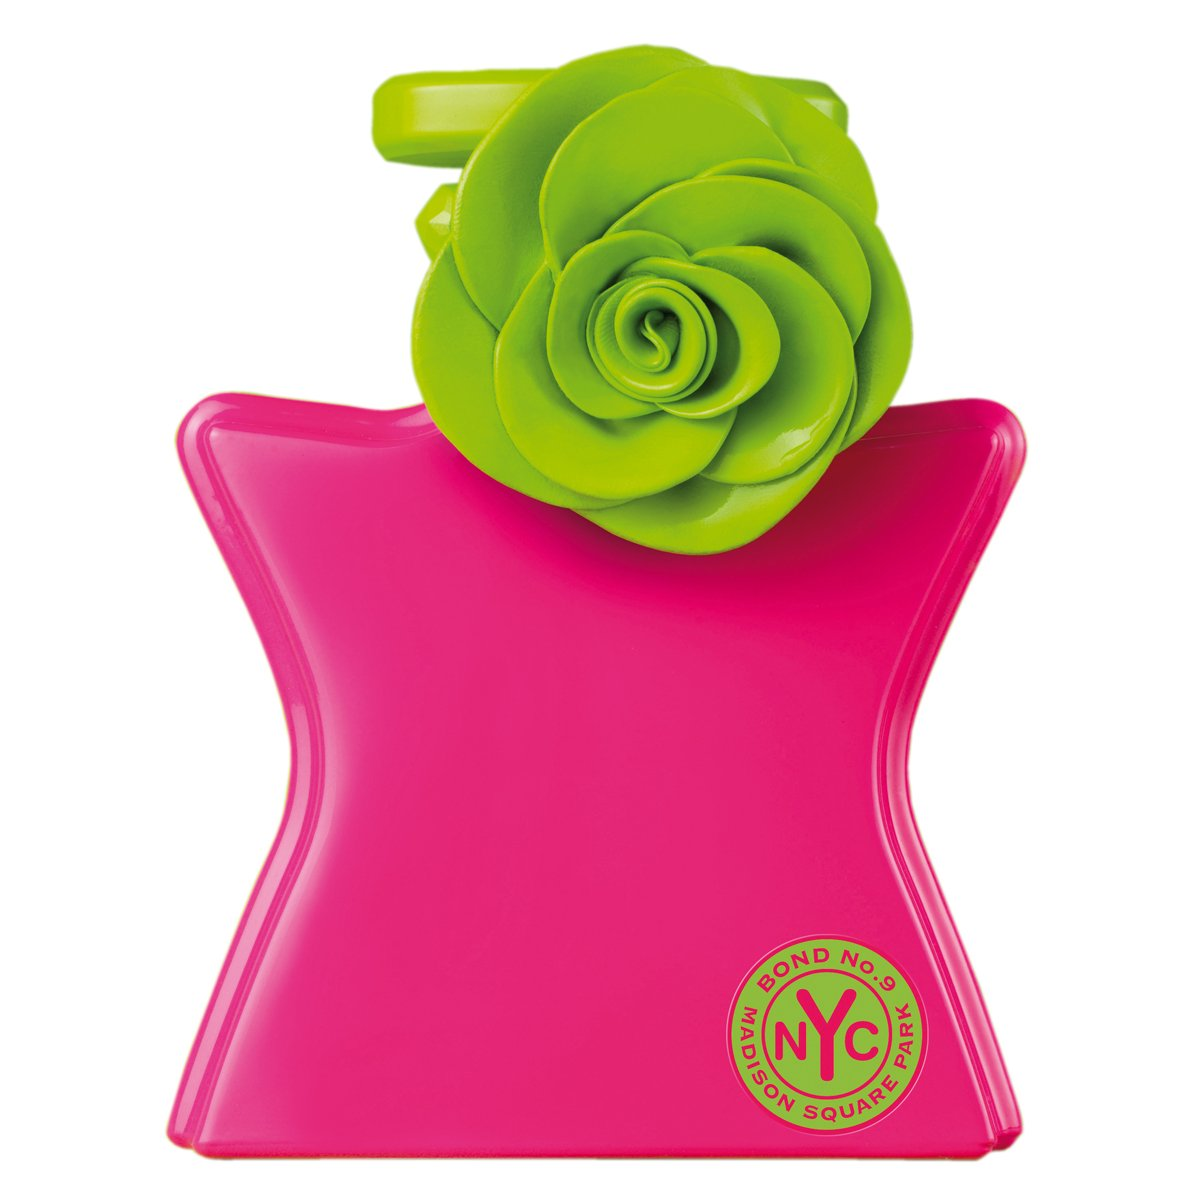 Bond No. 9 Madison Square Park Eau de Parfum Spary for Women, 1.7 Ounce